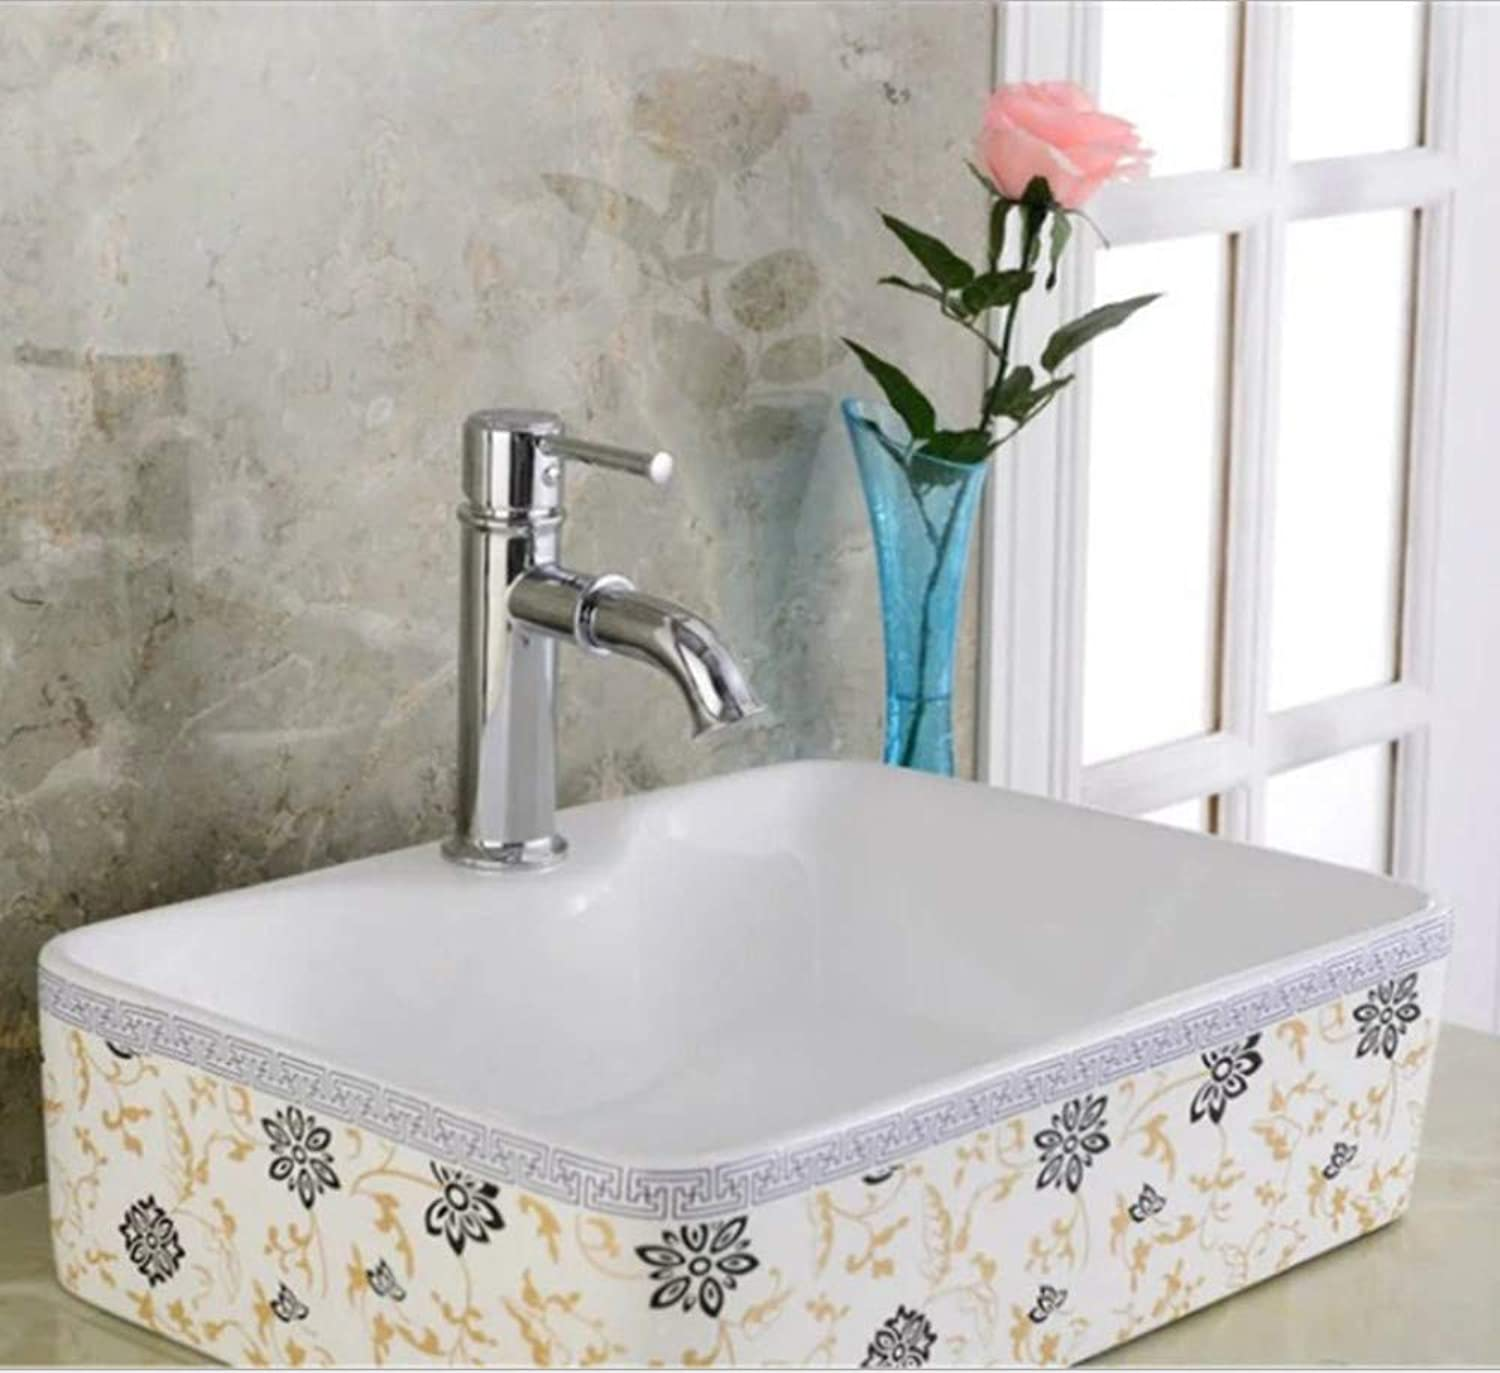 Kitchen Sink Taps Bathroom Sink Taps Hot And Cold Single Handle Single Hole Faucet Sink Basin Faucet Sink Basin Faucet